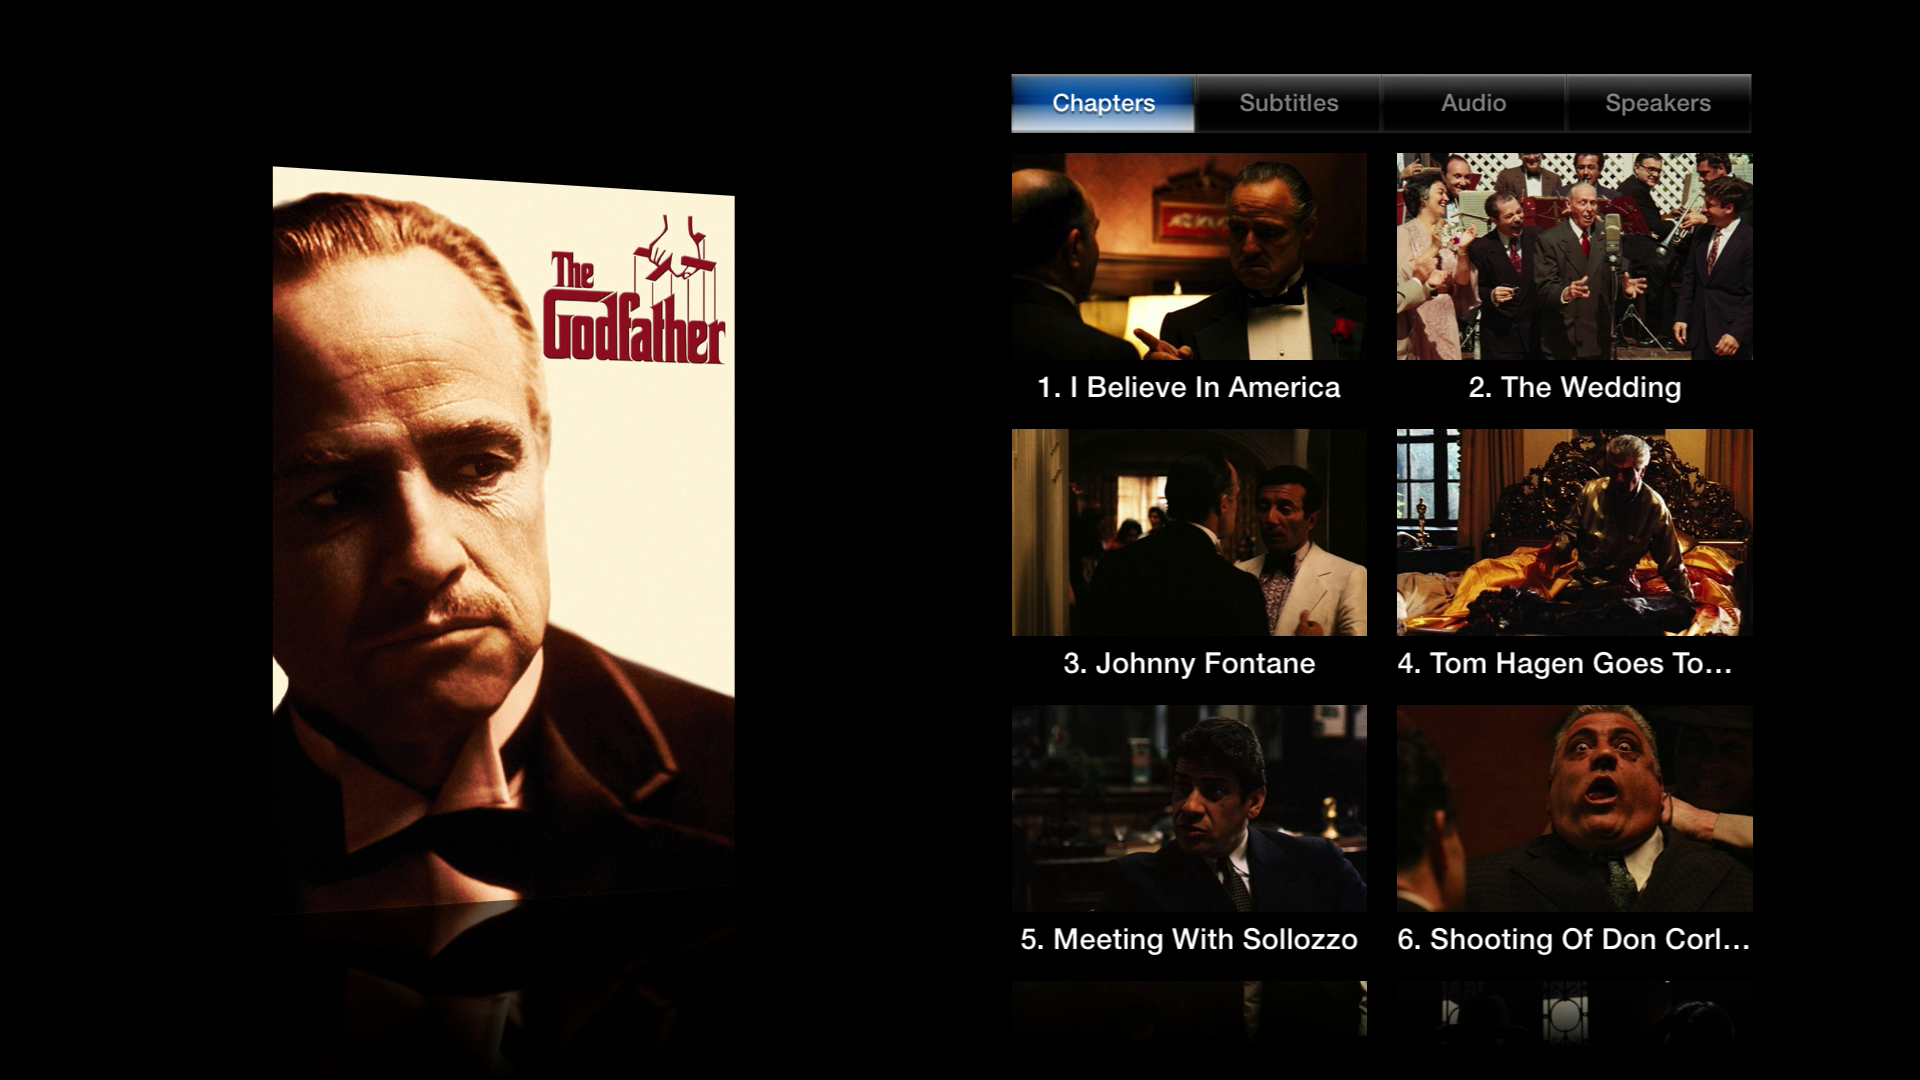 Figure 4: To see special options, such as visual chapter selection, play your video and then hold the Select button.